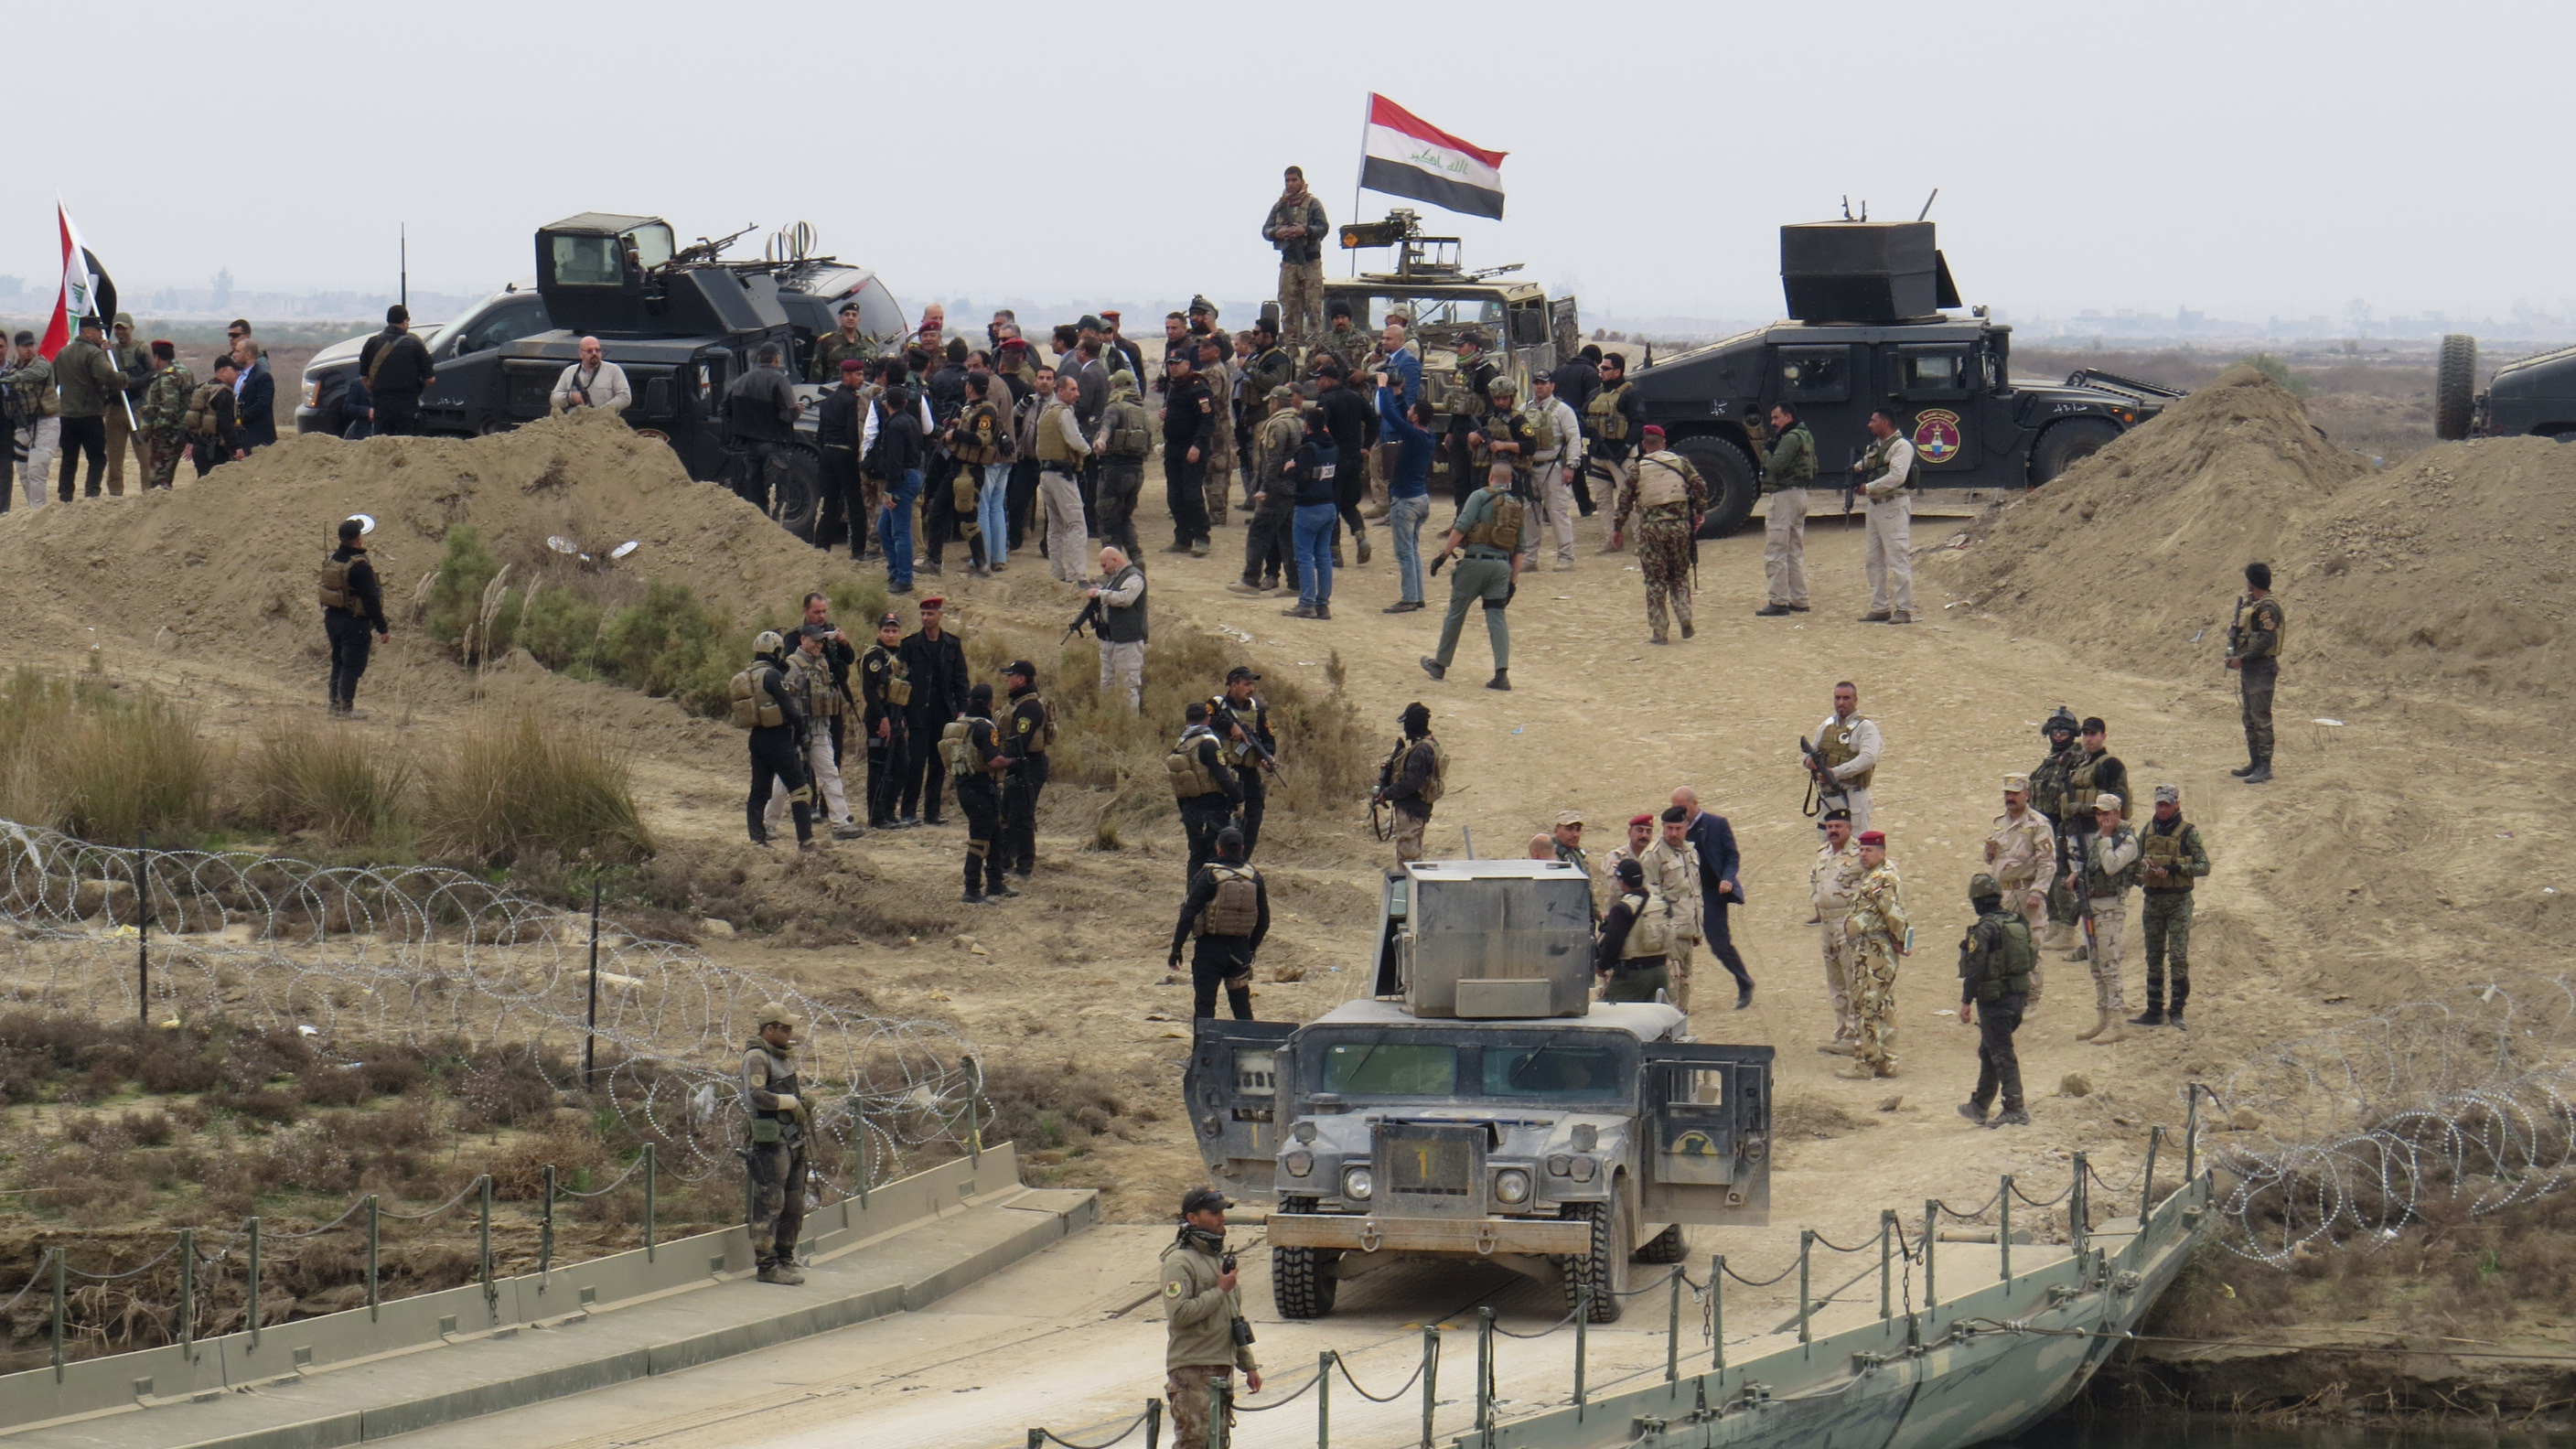 Iraqi security forces gather near a temporary bridge built by the corps of engineers in the Iraqi army south of Ramadi, during a visit by Iraqi Prime Minister Haider al-Abadi on December 29, 2015, after government forces recaptured the city from the Islamic State jihadist group. Abadi visited Ramadi, which lies around 100 kilometres (60 miles) west of Baghdad and is the capital of the province of Anbar, a day after federal forces announced the liberation of the city from the Islamic State group, clinching a landmark victory.  AFP PHOTO / STR / AFP / STR        (Photo credit should read STR/AFP/Getty Images)